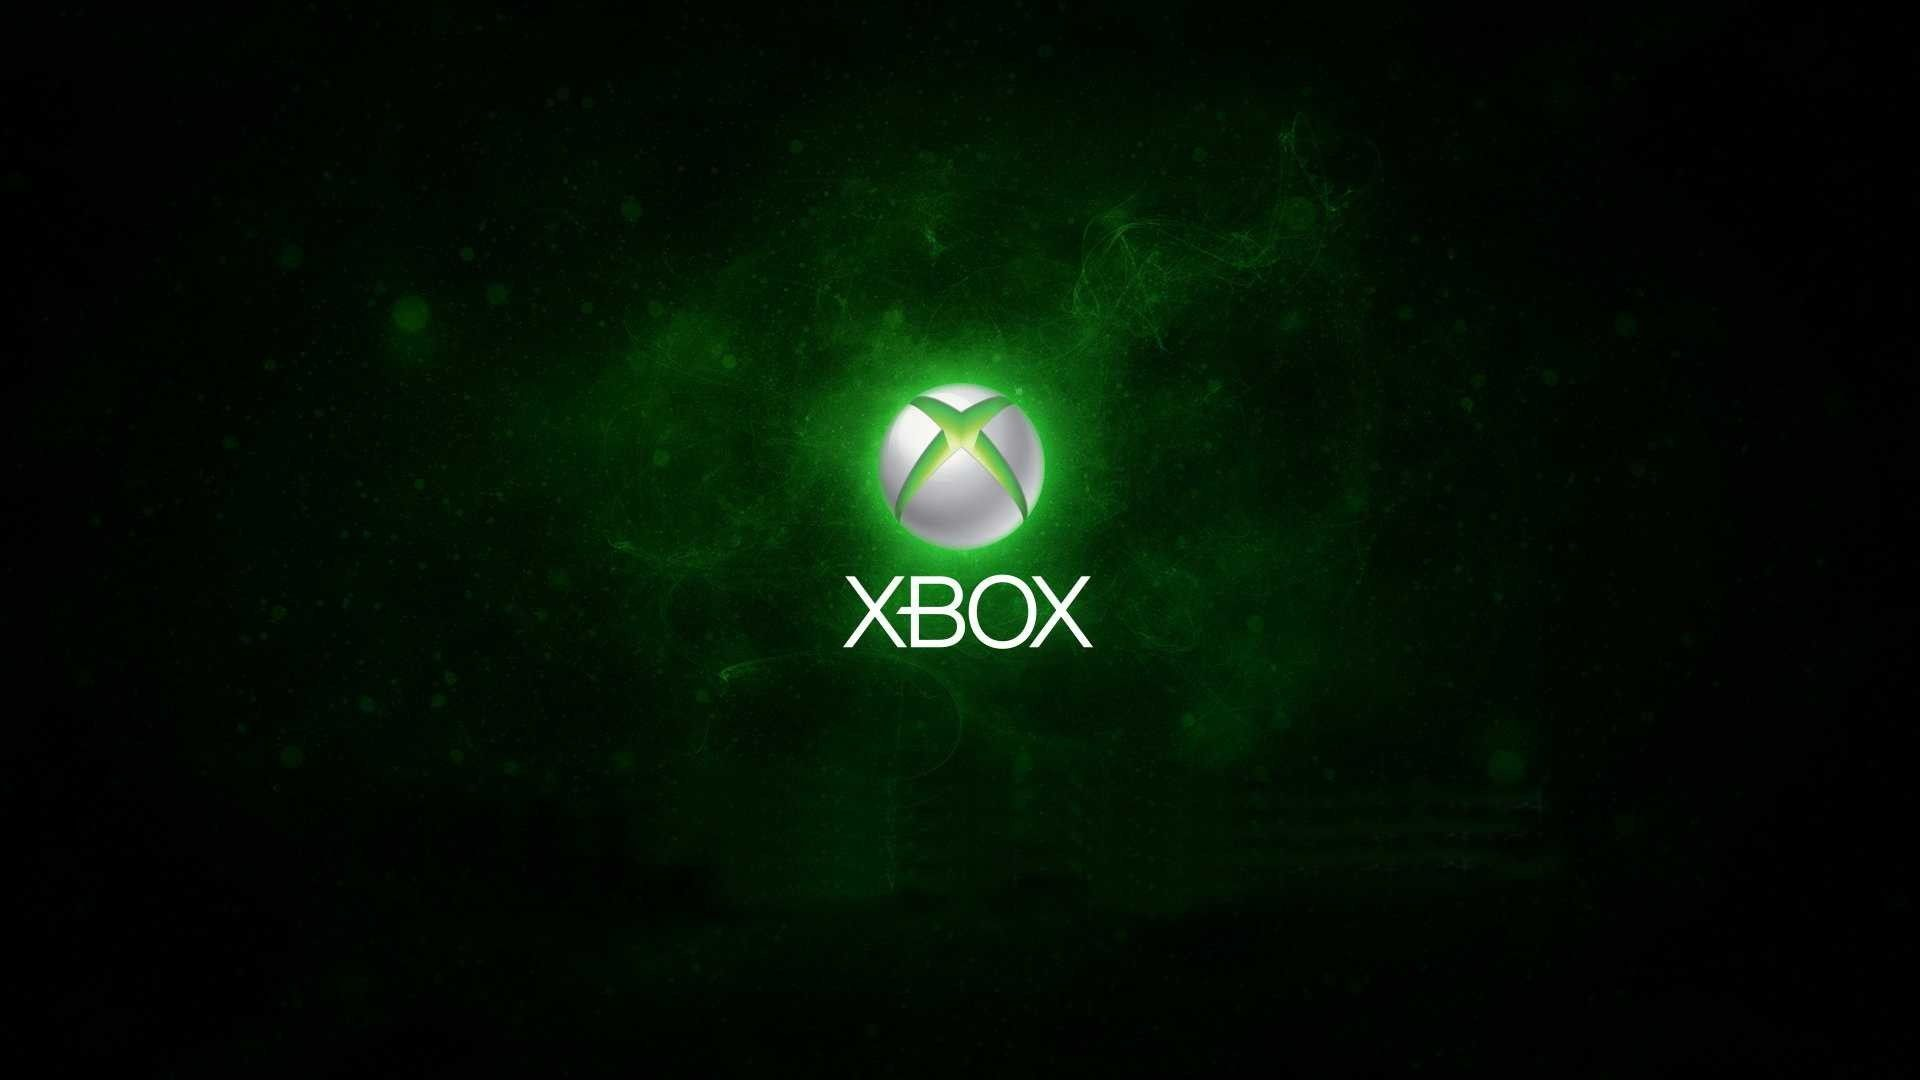 77 Xbox One Wallpapers On Wallpaperplay Xbox Logo Xbox One Xbox